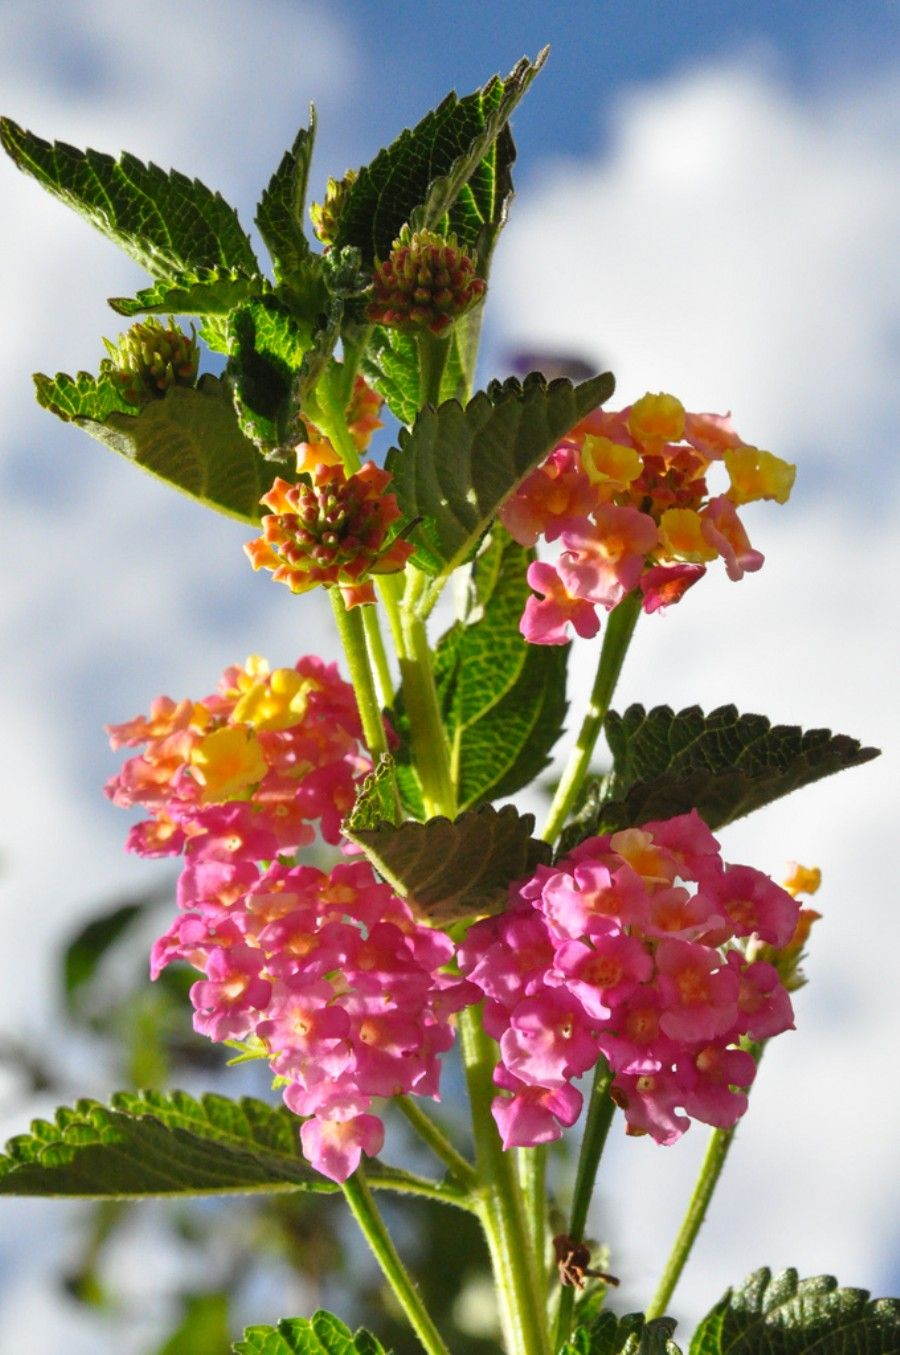 Pin by donna thompson on plants and flowers pinterest butterfly 25 stunning flower photographs that are absolutely beautiful i think the flower is lantana while i love the plant it is probably the only stinky flower i izmirmasajfo Gallery